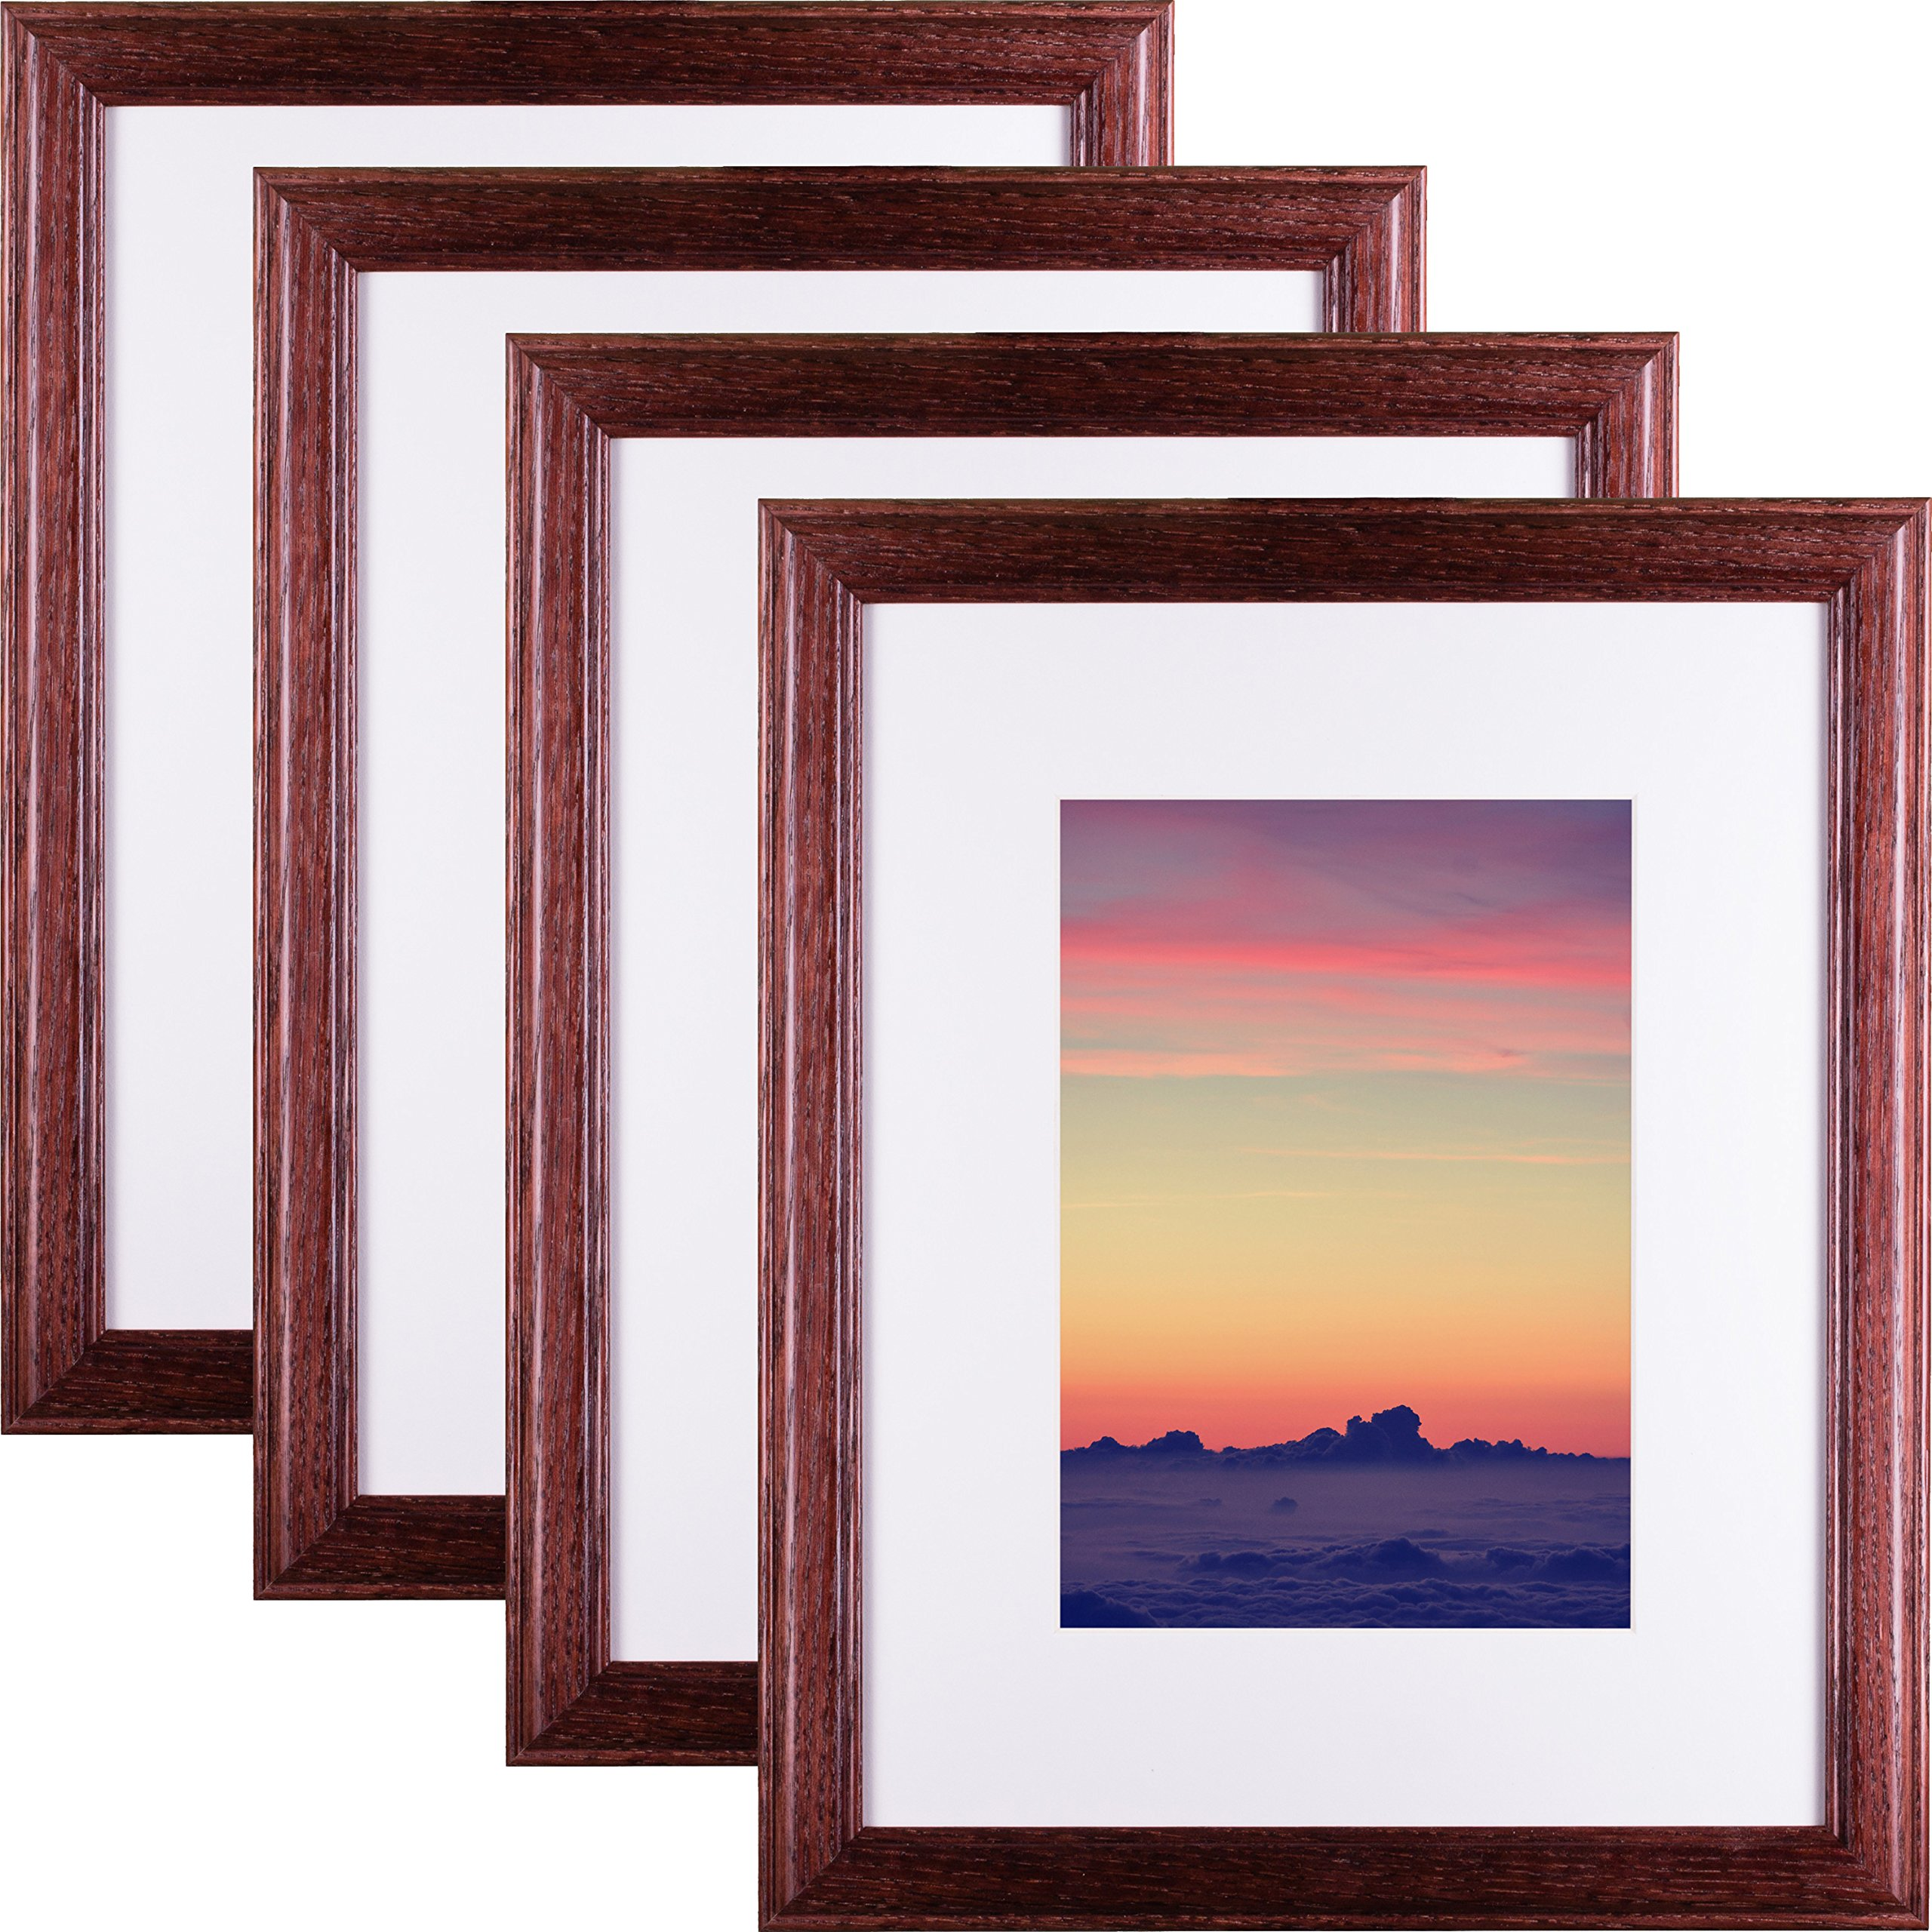 Craig Frames Wiltshire 236 Hardwood Picture Frame with Single White, Displays a 16 x 20 Inch Print with the Mat or 20 x 24 Inch without the Mat, Red, Set of 4